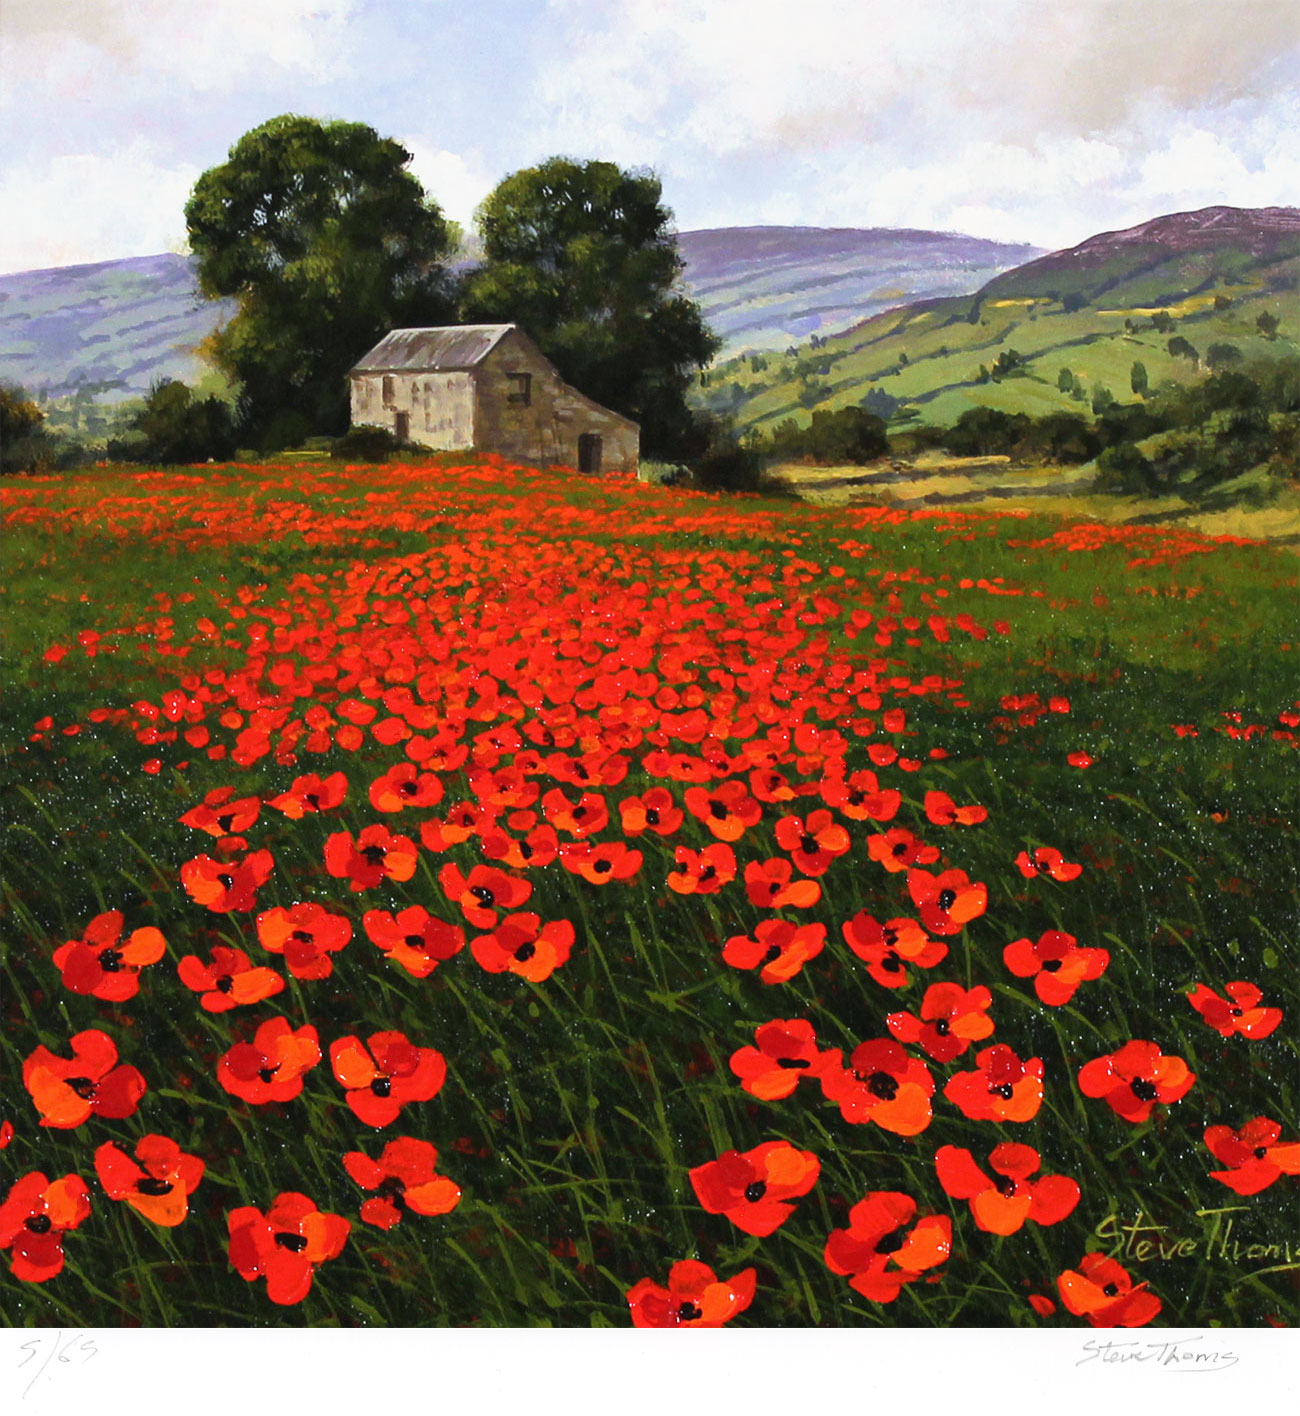 Steve Thoms, Signed limited edition print, Yorkshire Poppies. Click to enlarge